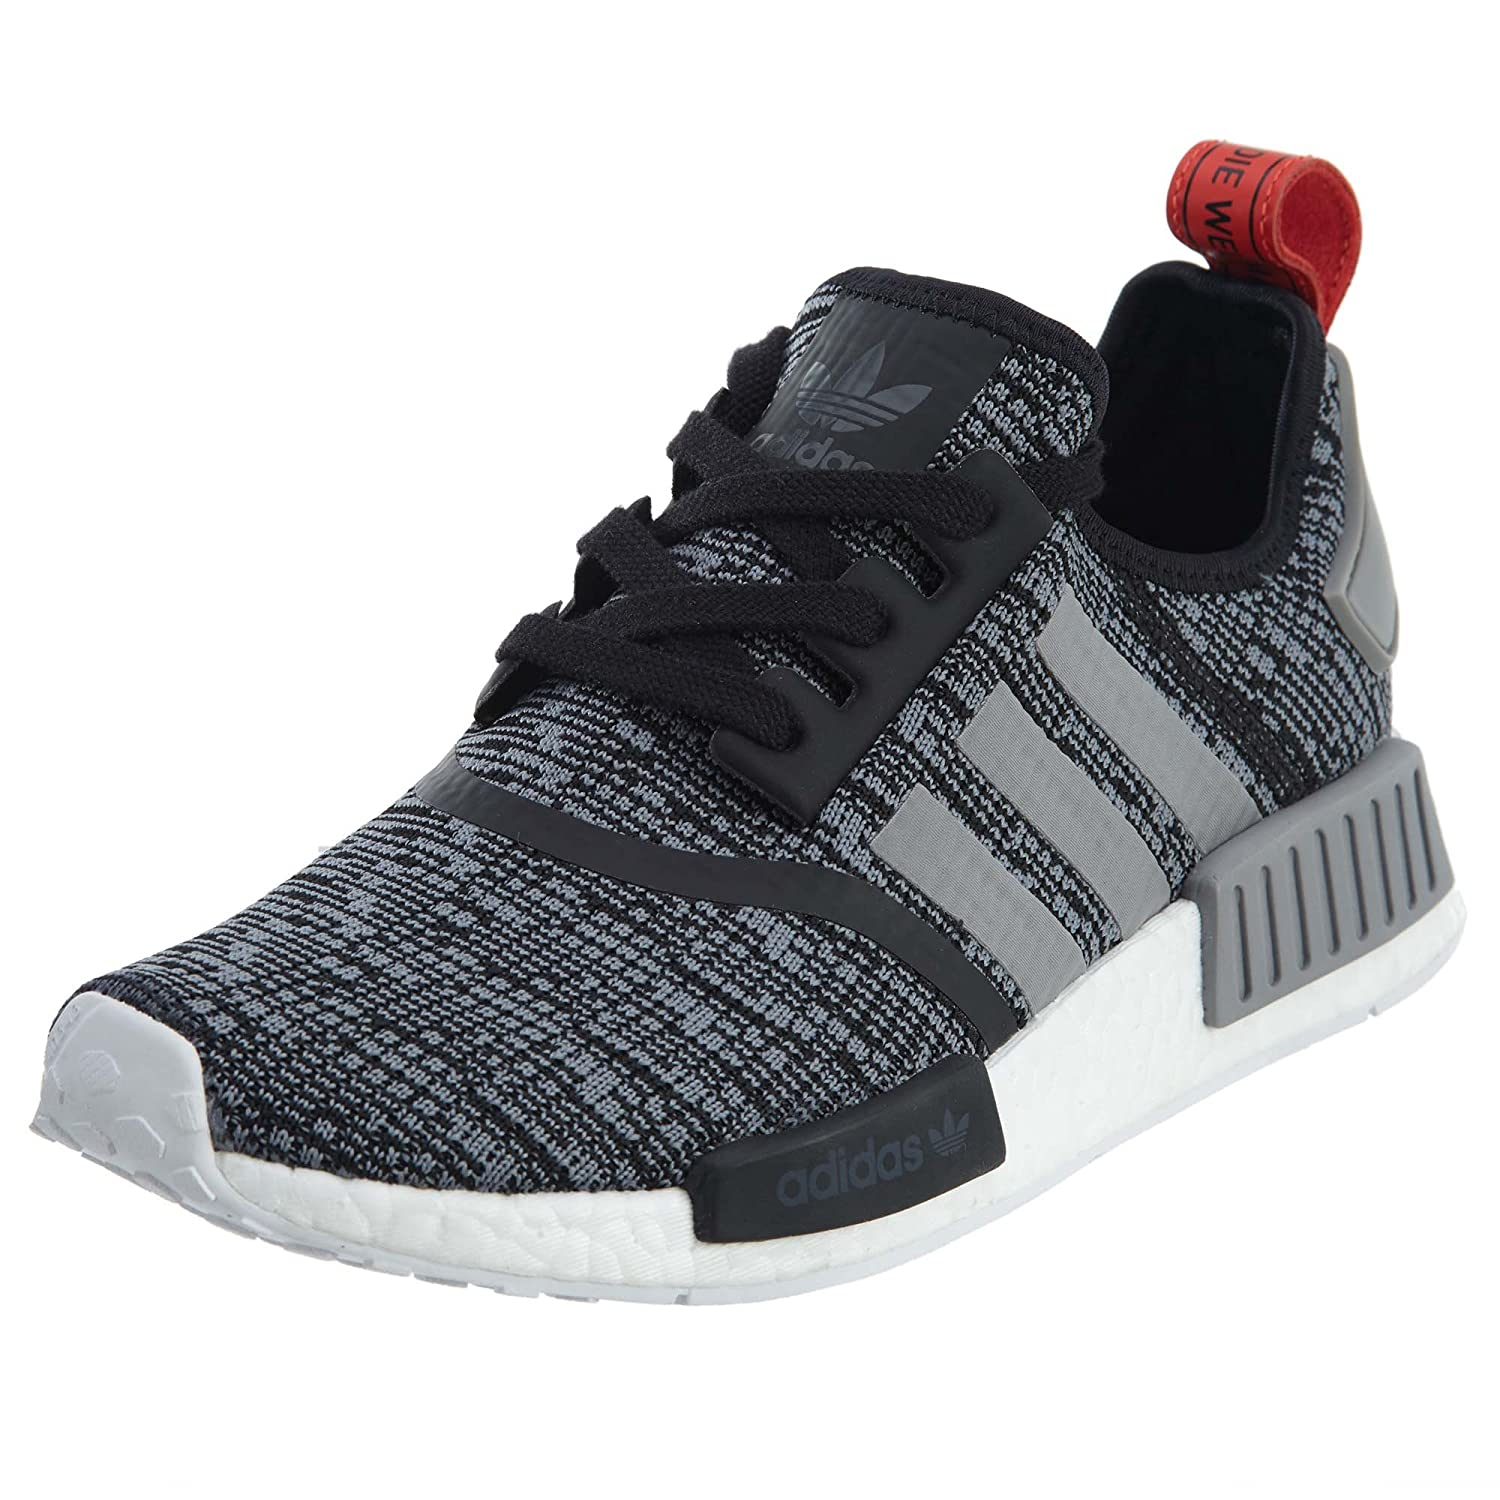 Adidas Men's Nmd R1 Ankle-High Fabric Running Shoe B01HHGCVOM 11.5 D(M) US|Core Black/Dark Grey Heather Solid Grey/Core Black